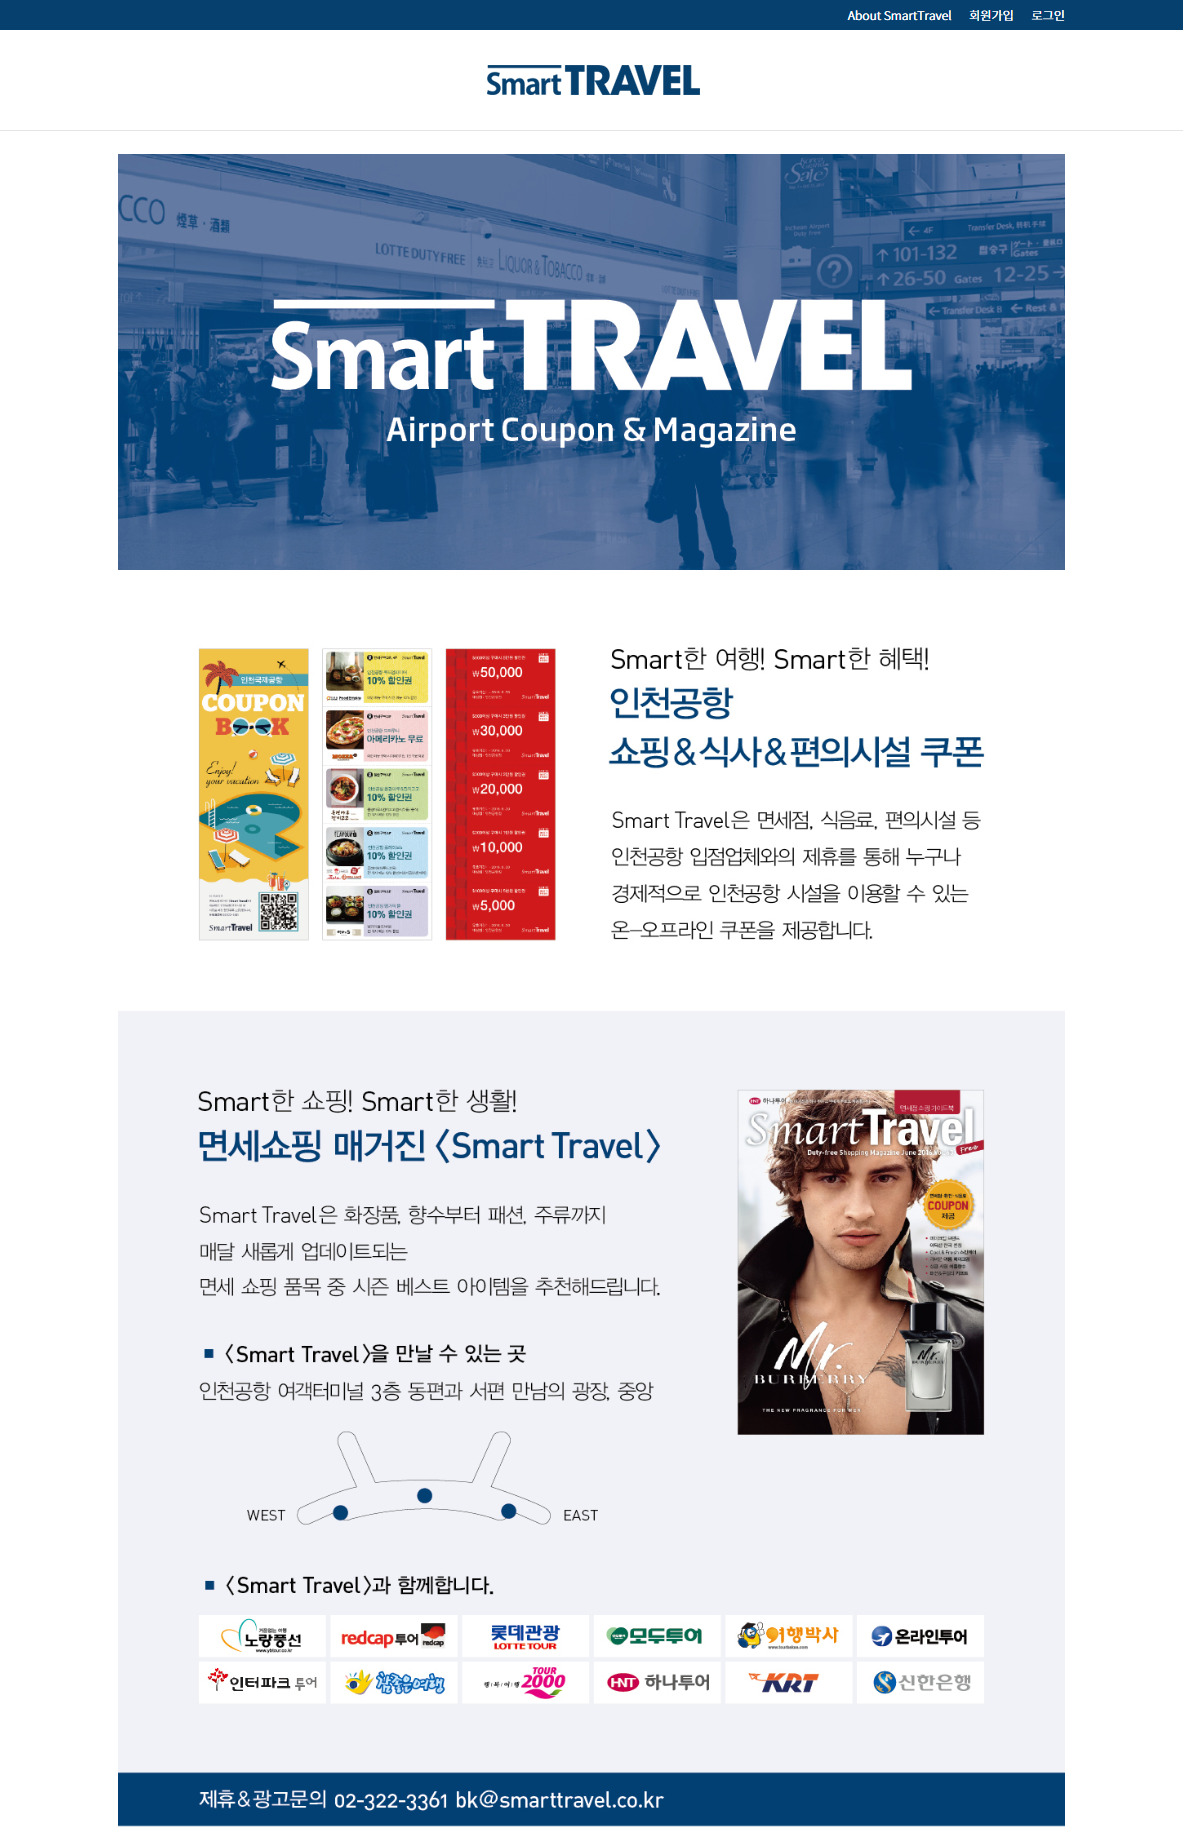 Screenshot-2018-1-26 About SmartTravel Smart Travel